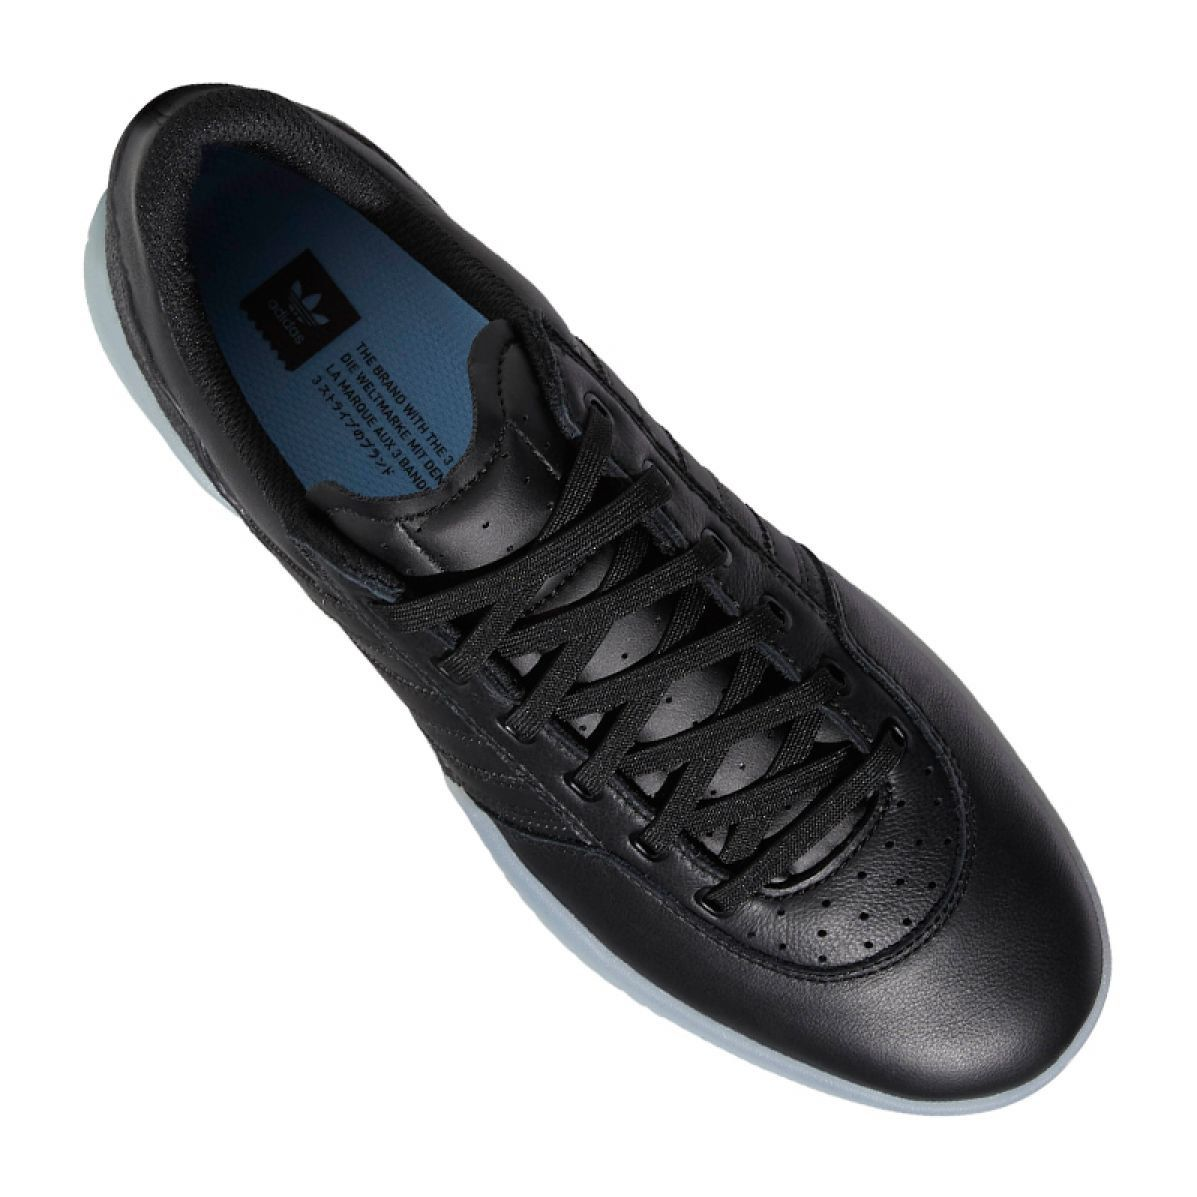 Buty Adidas City Cup Db3076 Czarne Sports Shoes Adidas Black Shoes All Black Sneakers